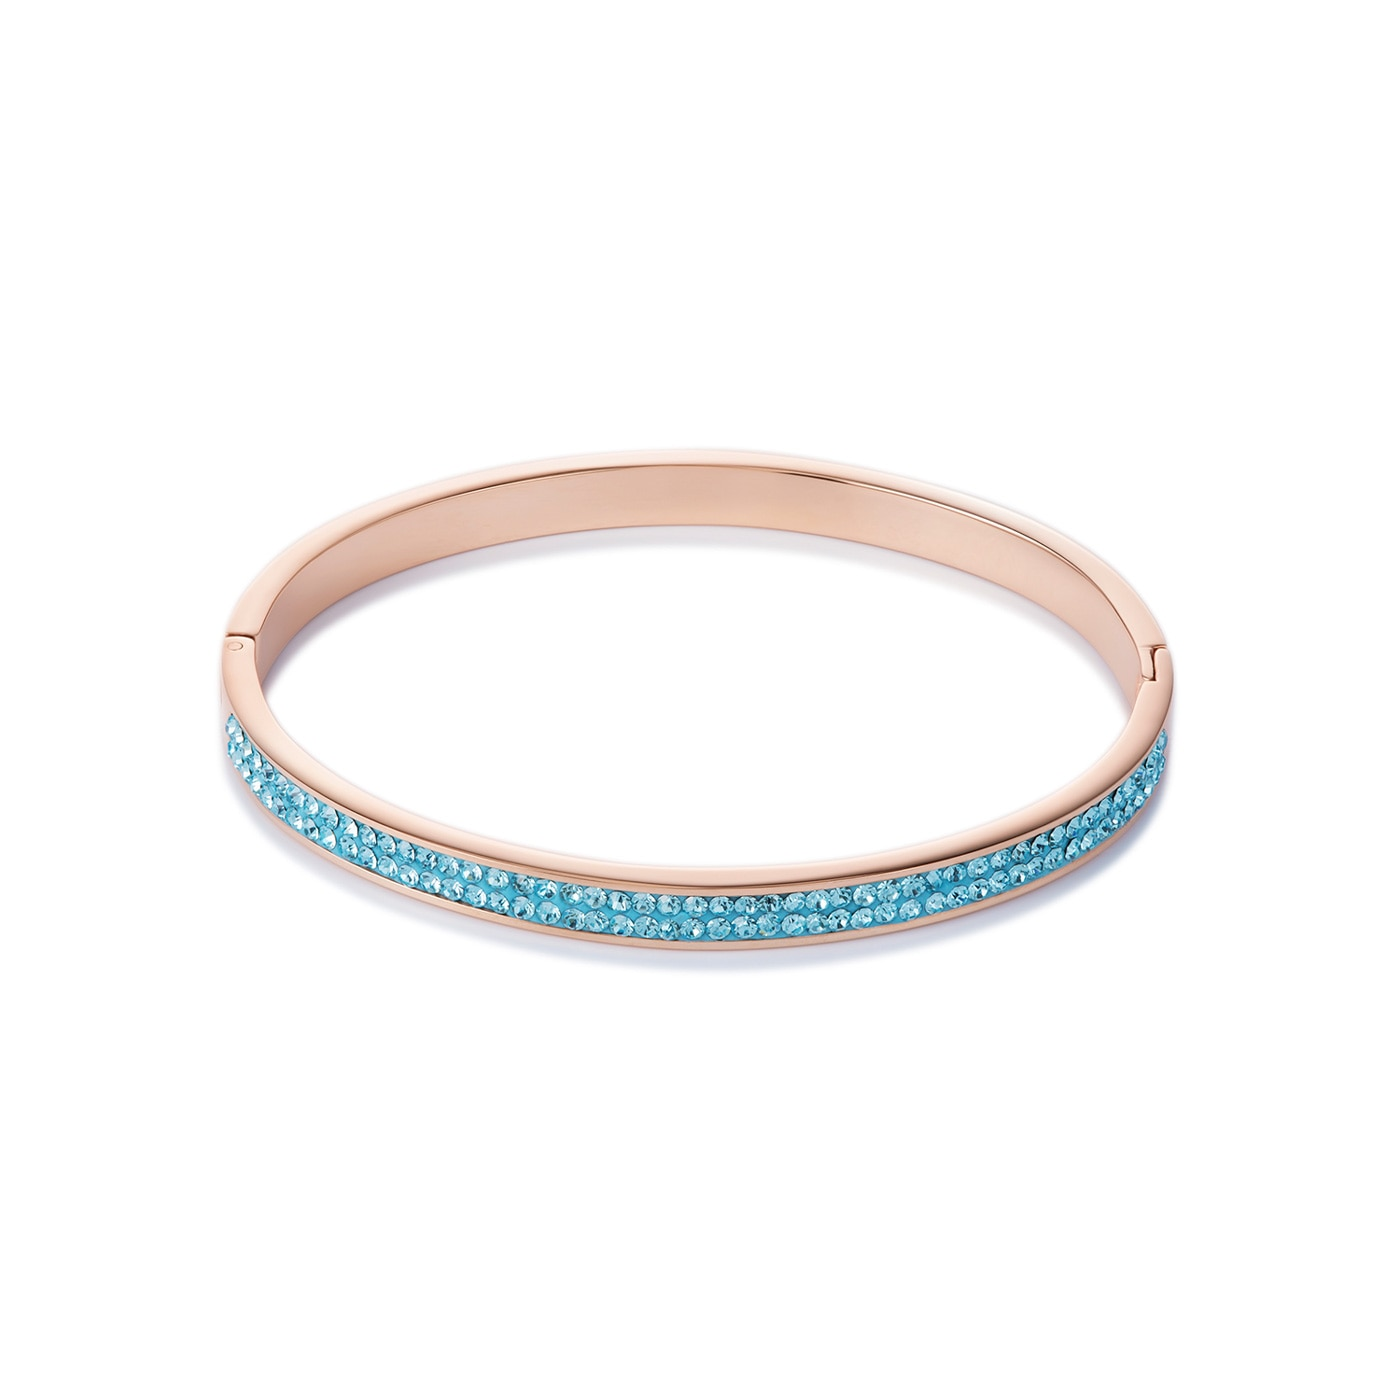 Bangle rose gold & crystals pavé aqua